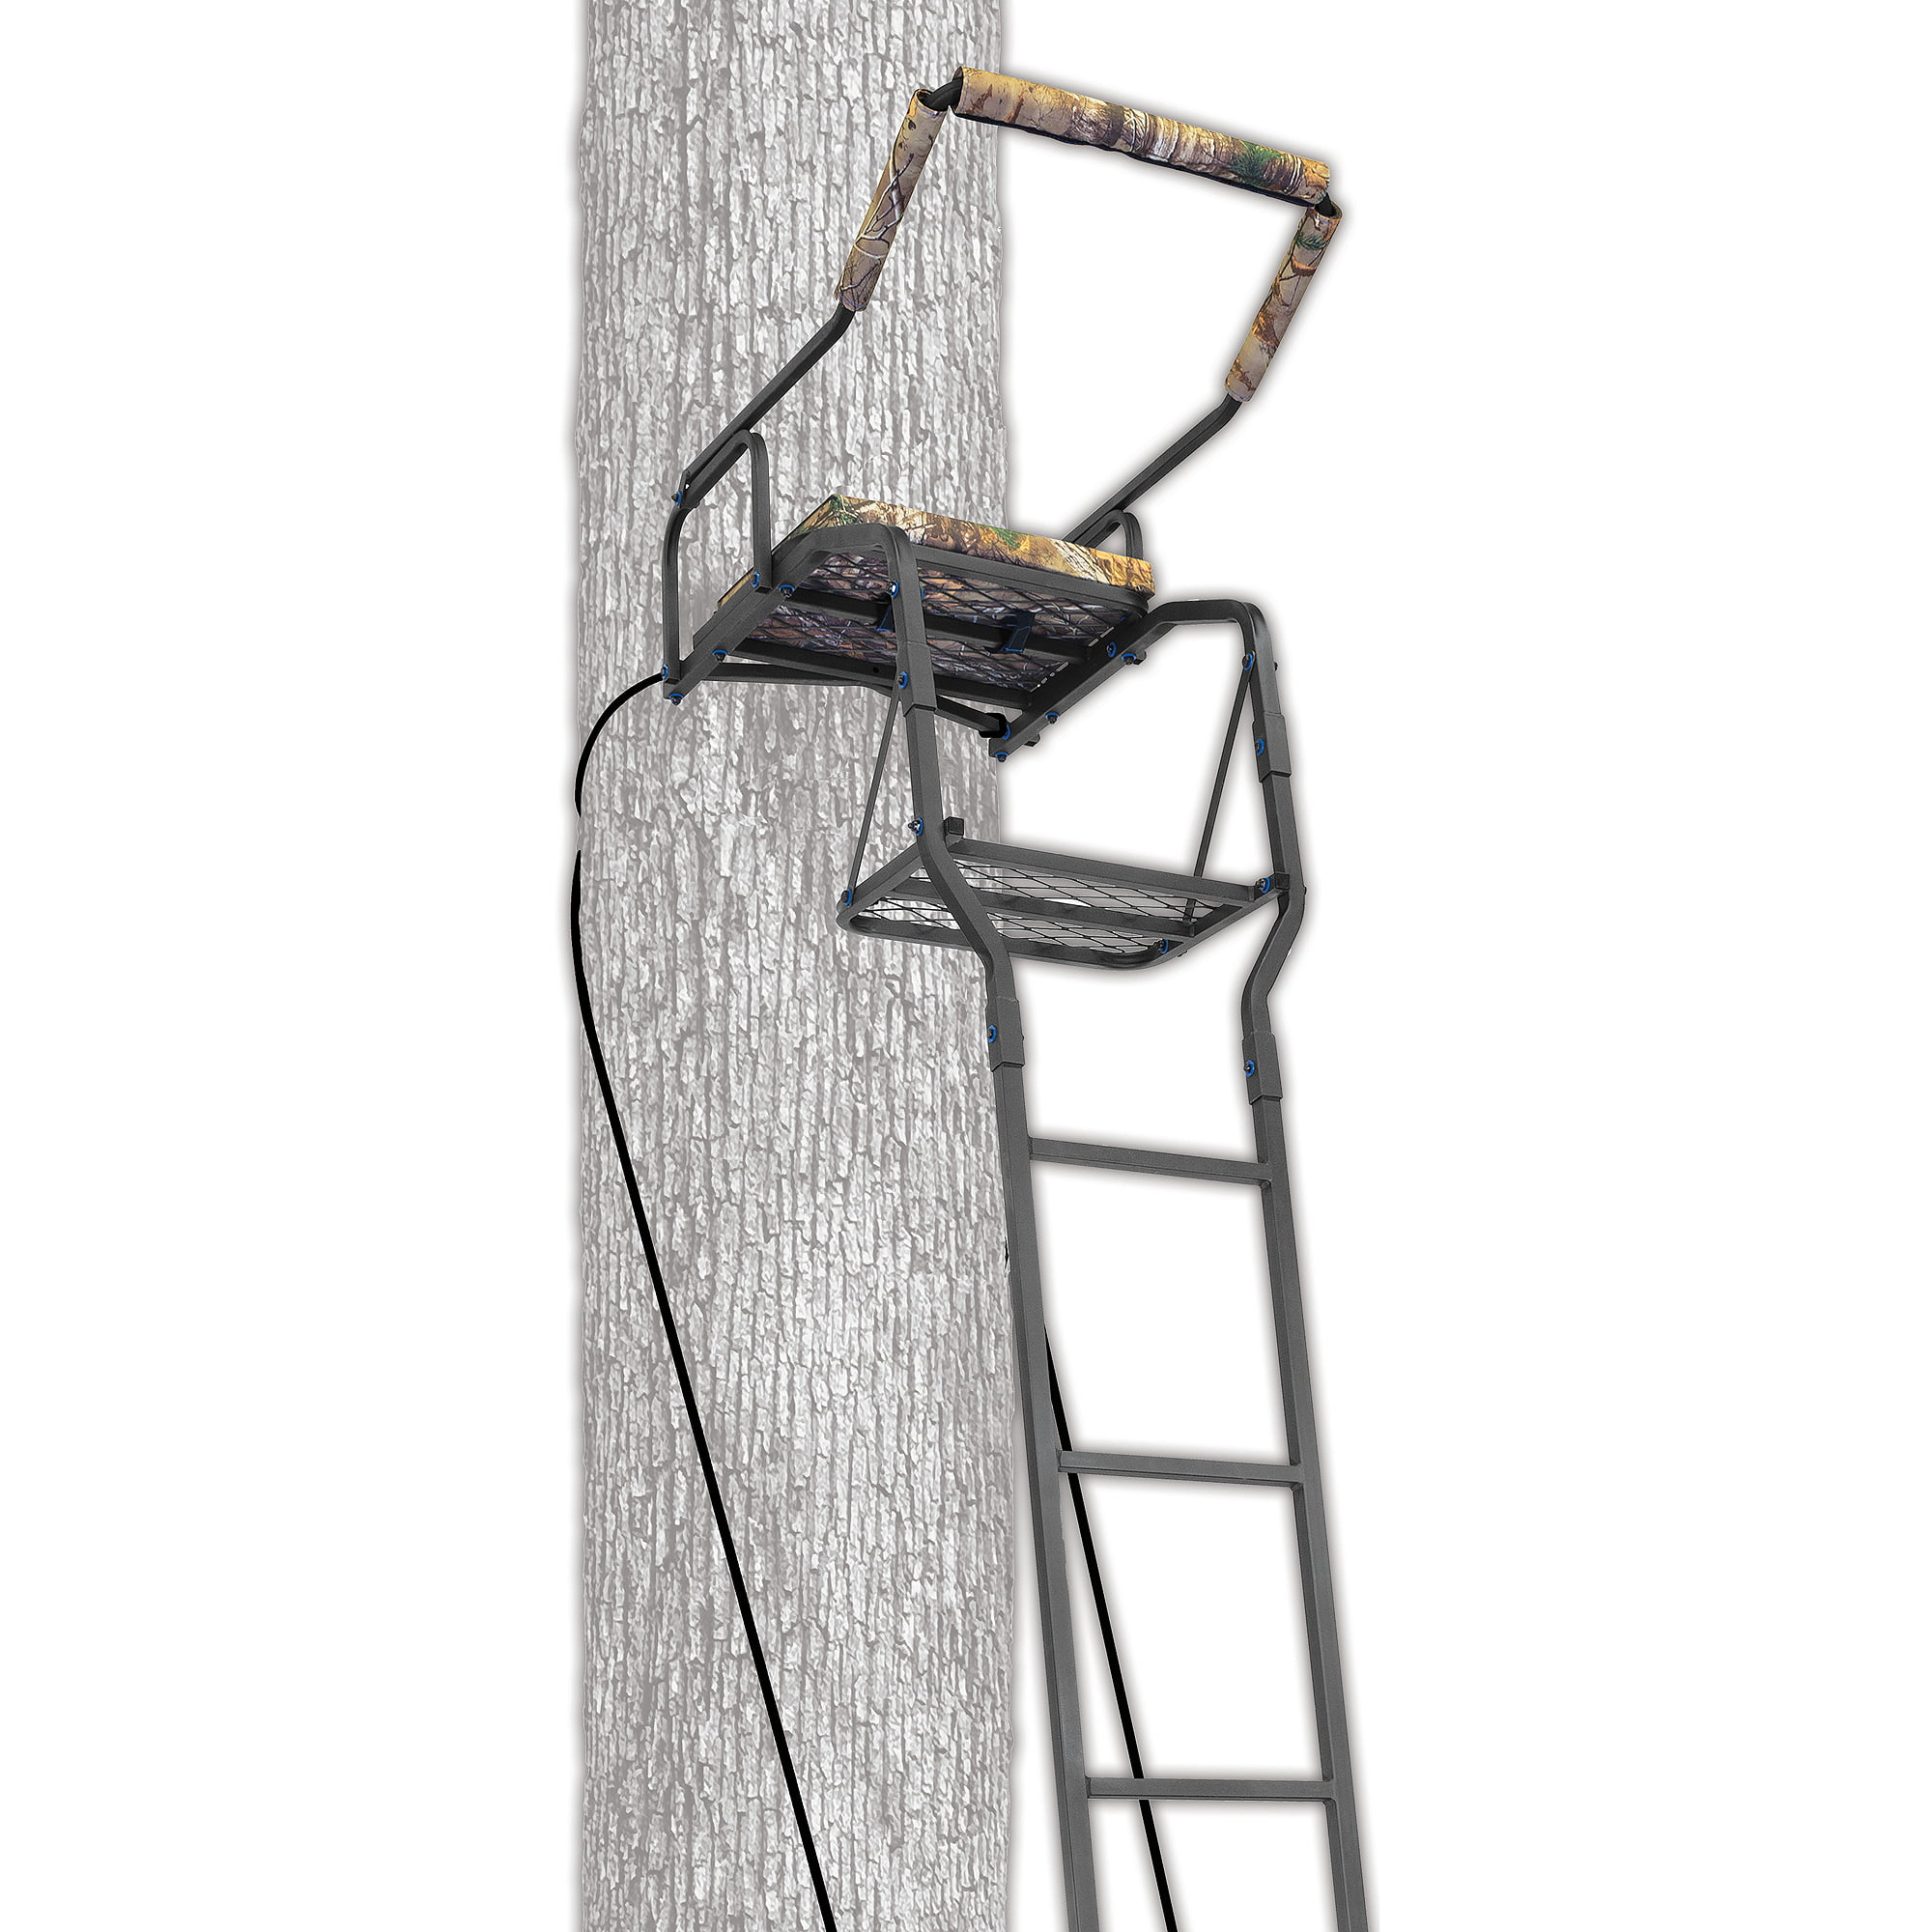 Ameristep 16 39 recon ladderstand hunting ebay for Tree stand pictures